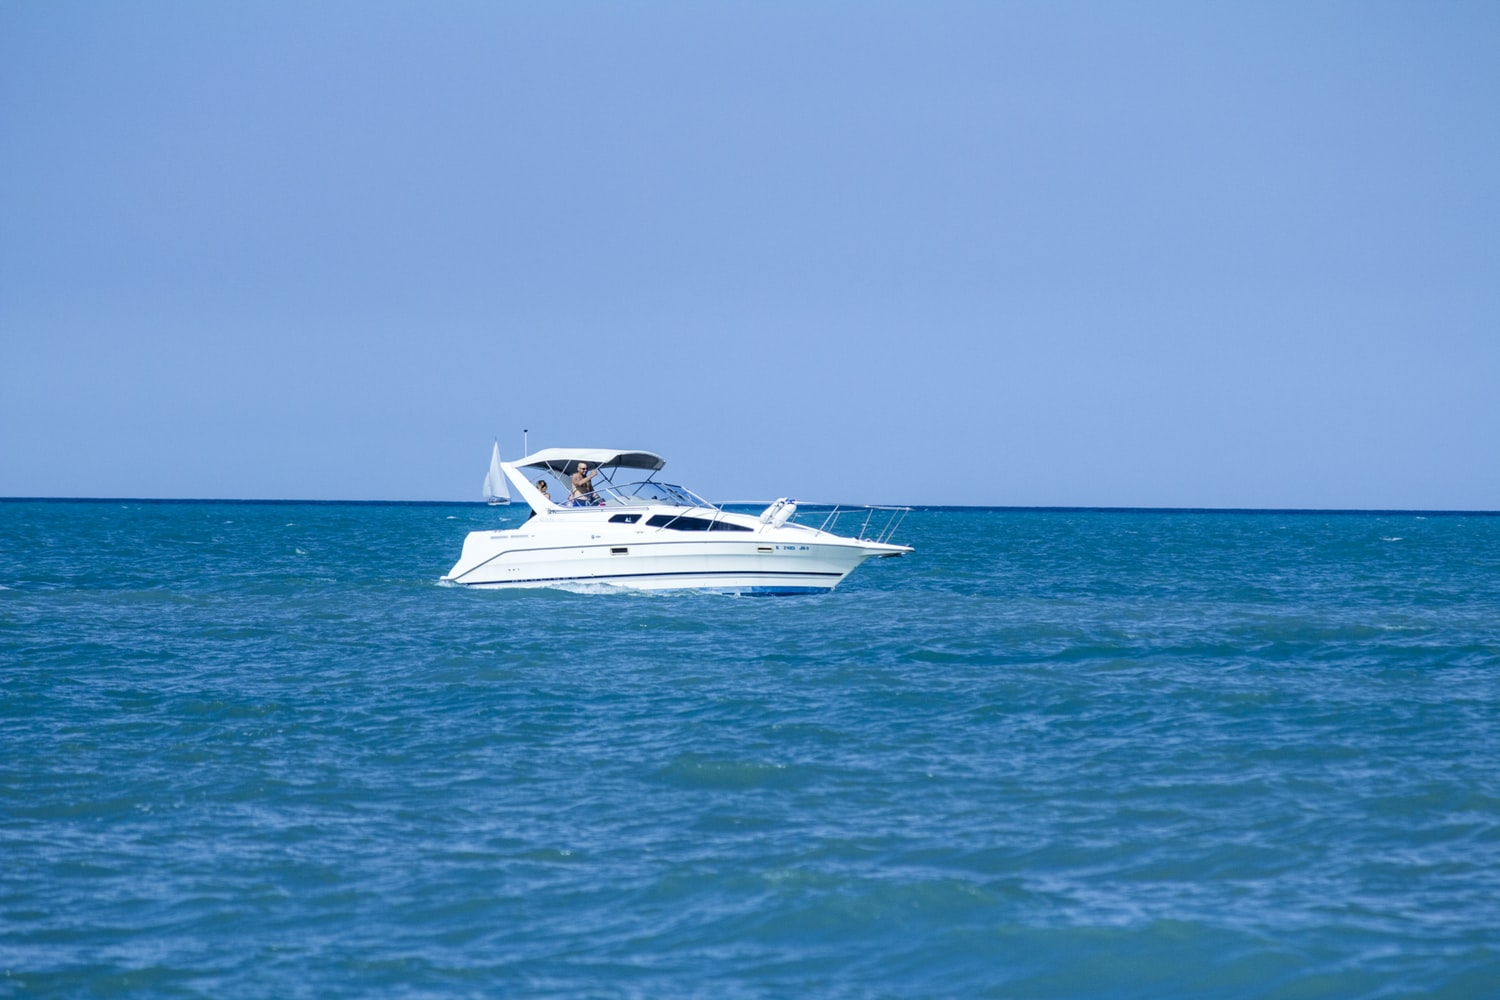 6 Reasons You Need to Own a Boat